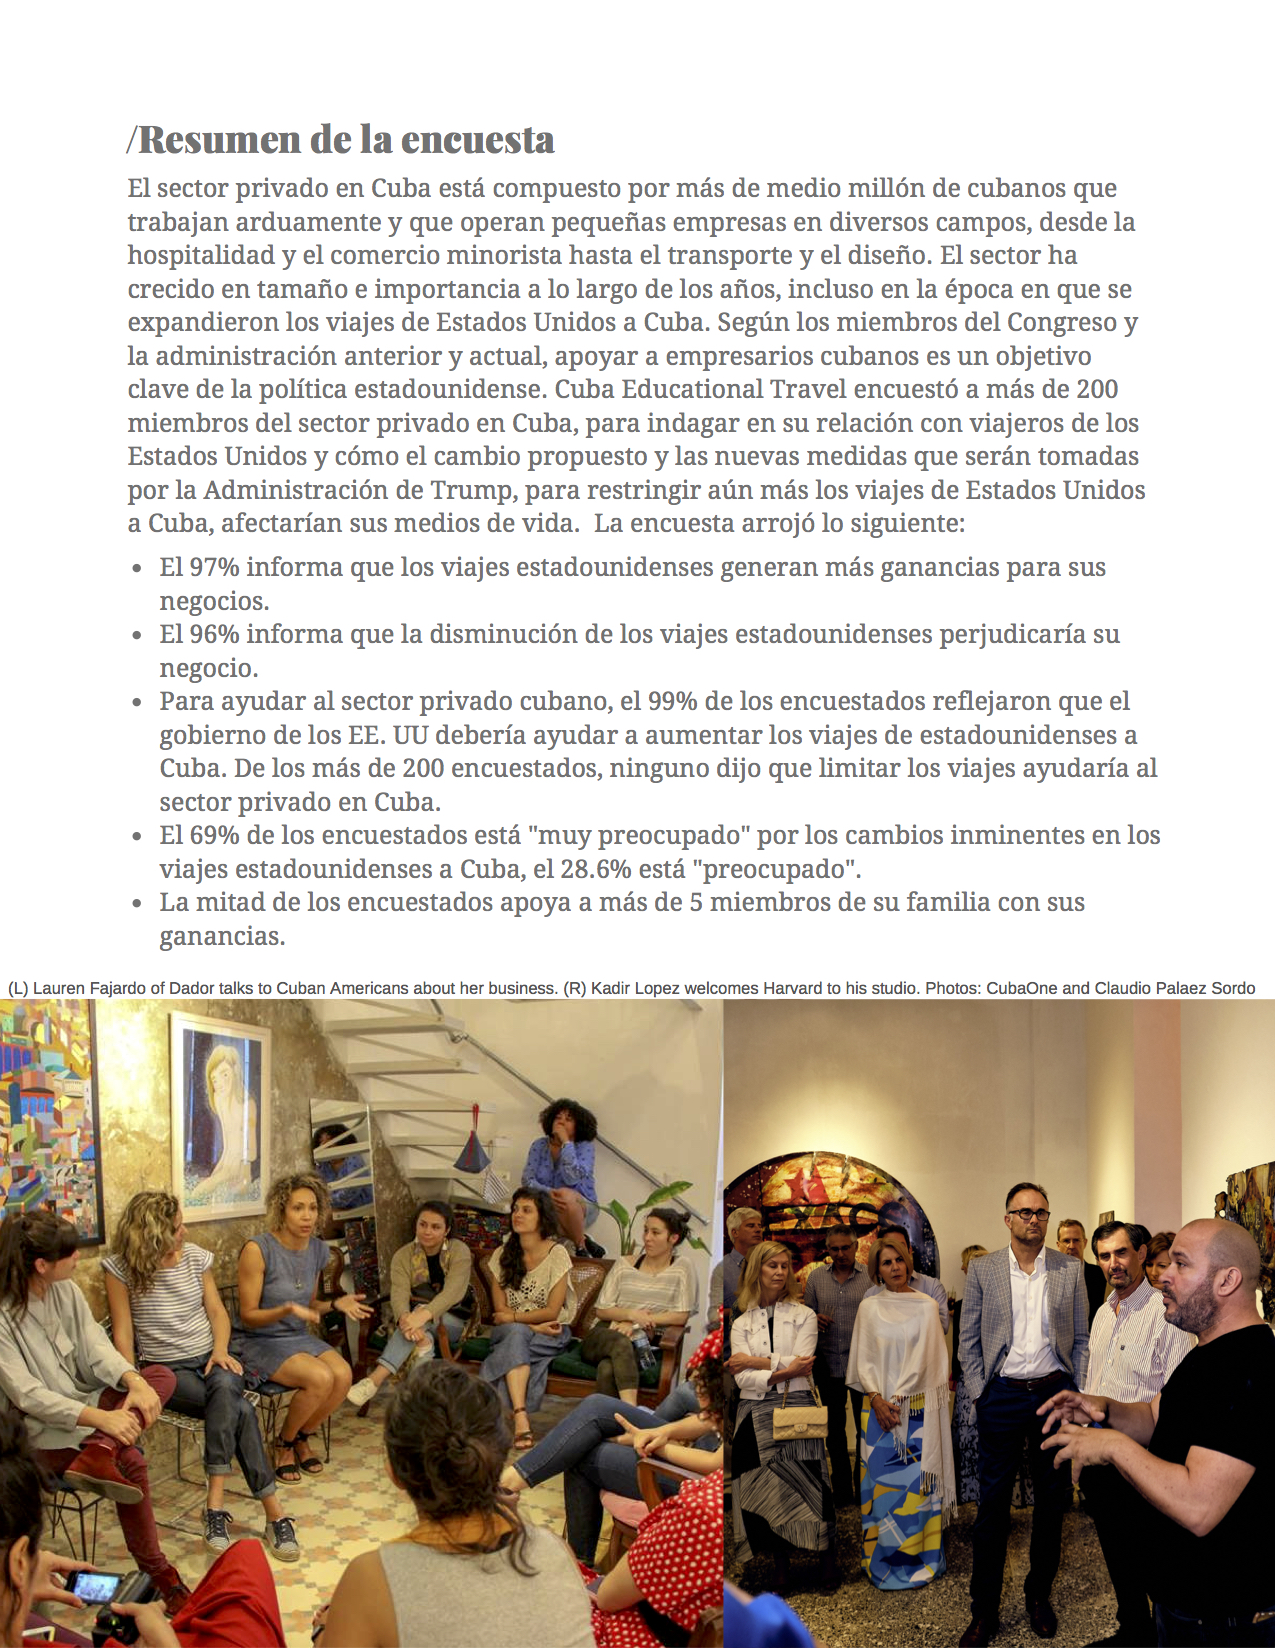 3May 2019 Survey Finds Cuban Private Sector Relies Heavily on American Visitors and Cubans Are _Very Worried_ About Impending Restrictions on Travel (1).jpg